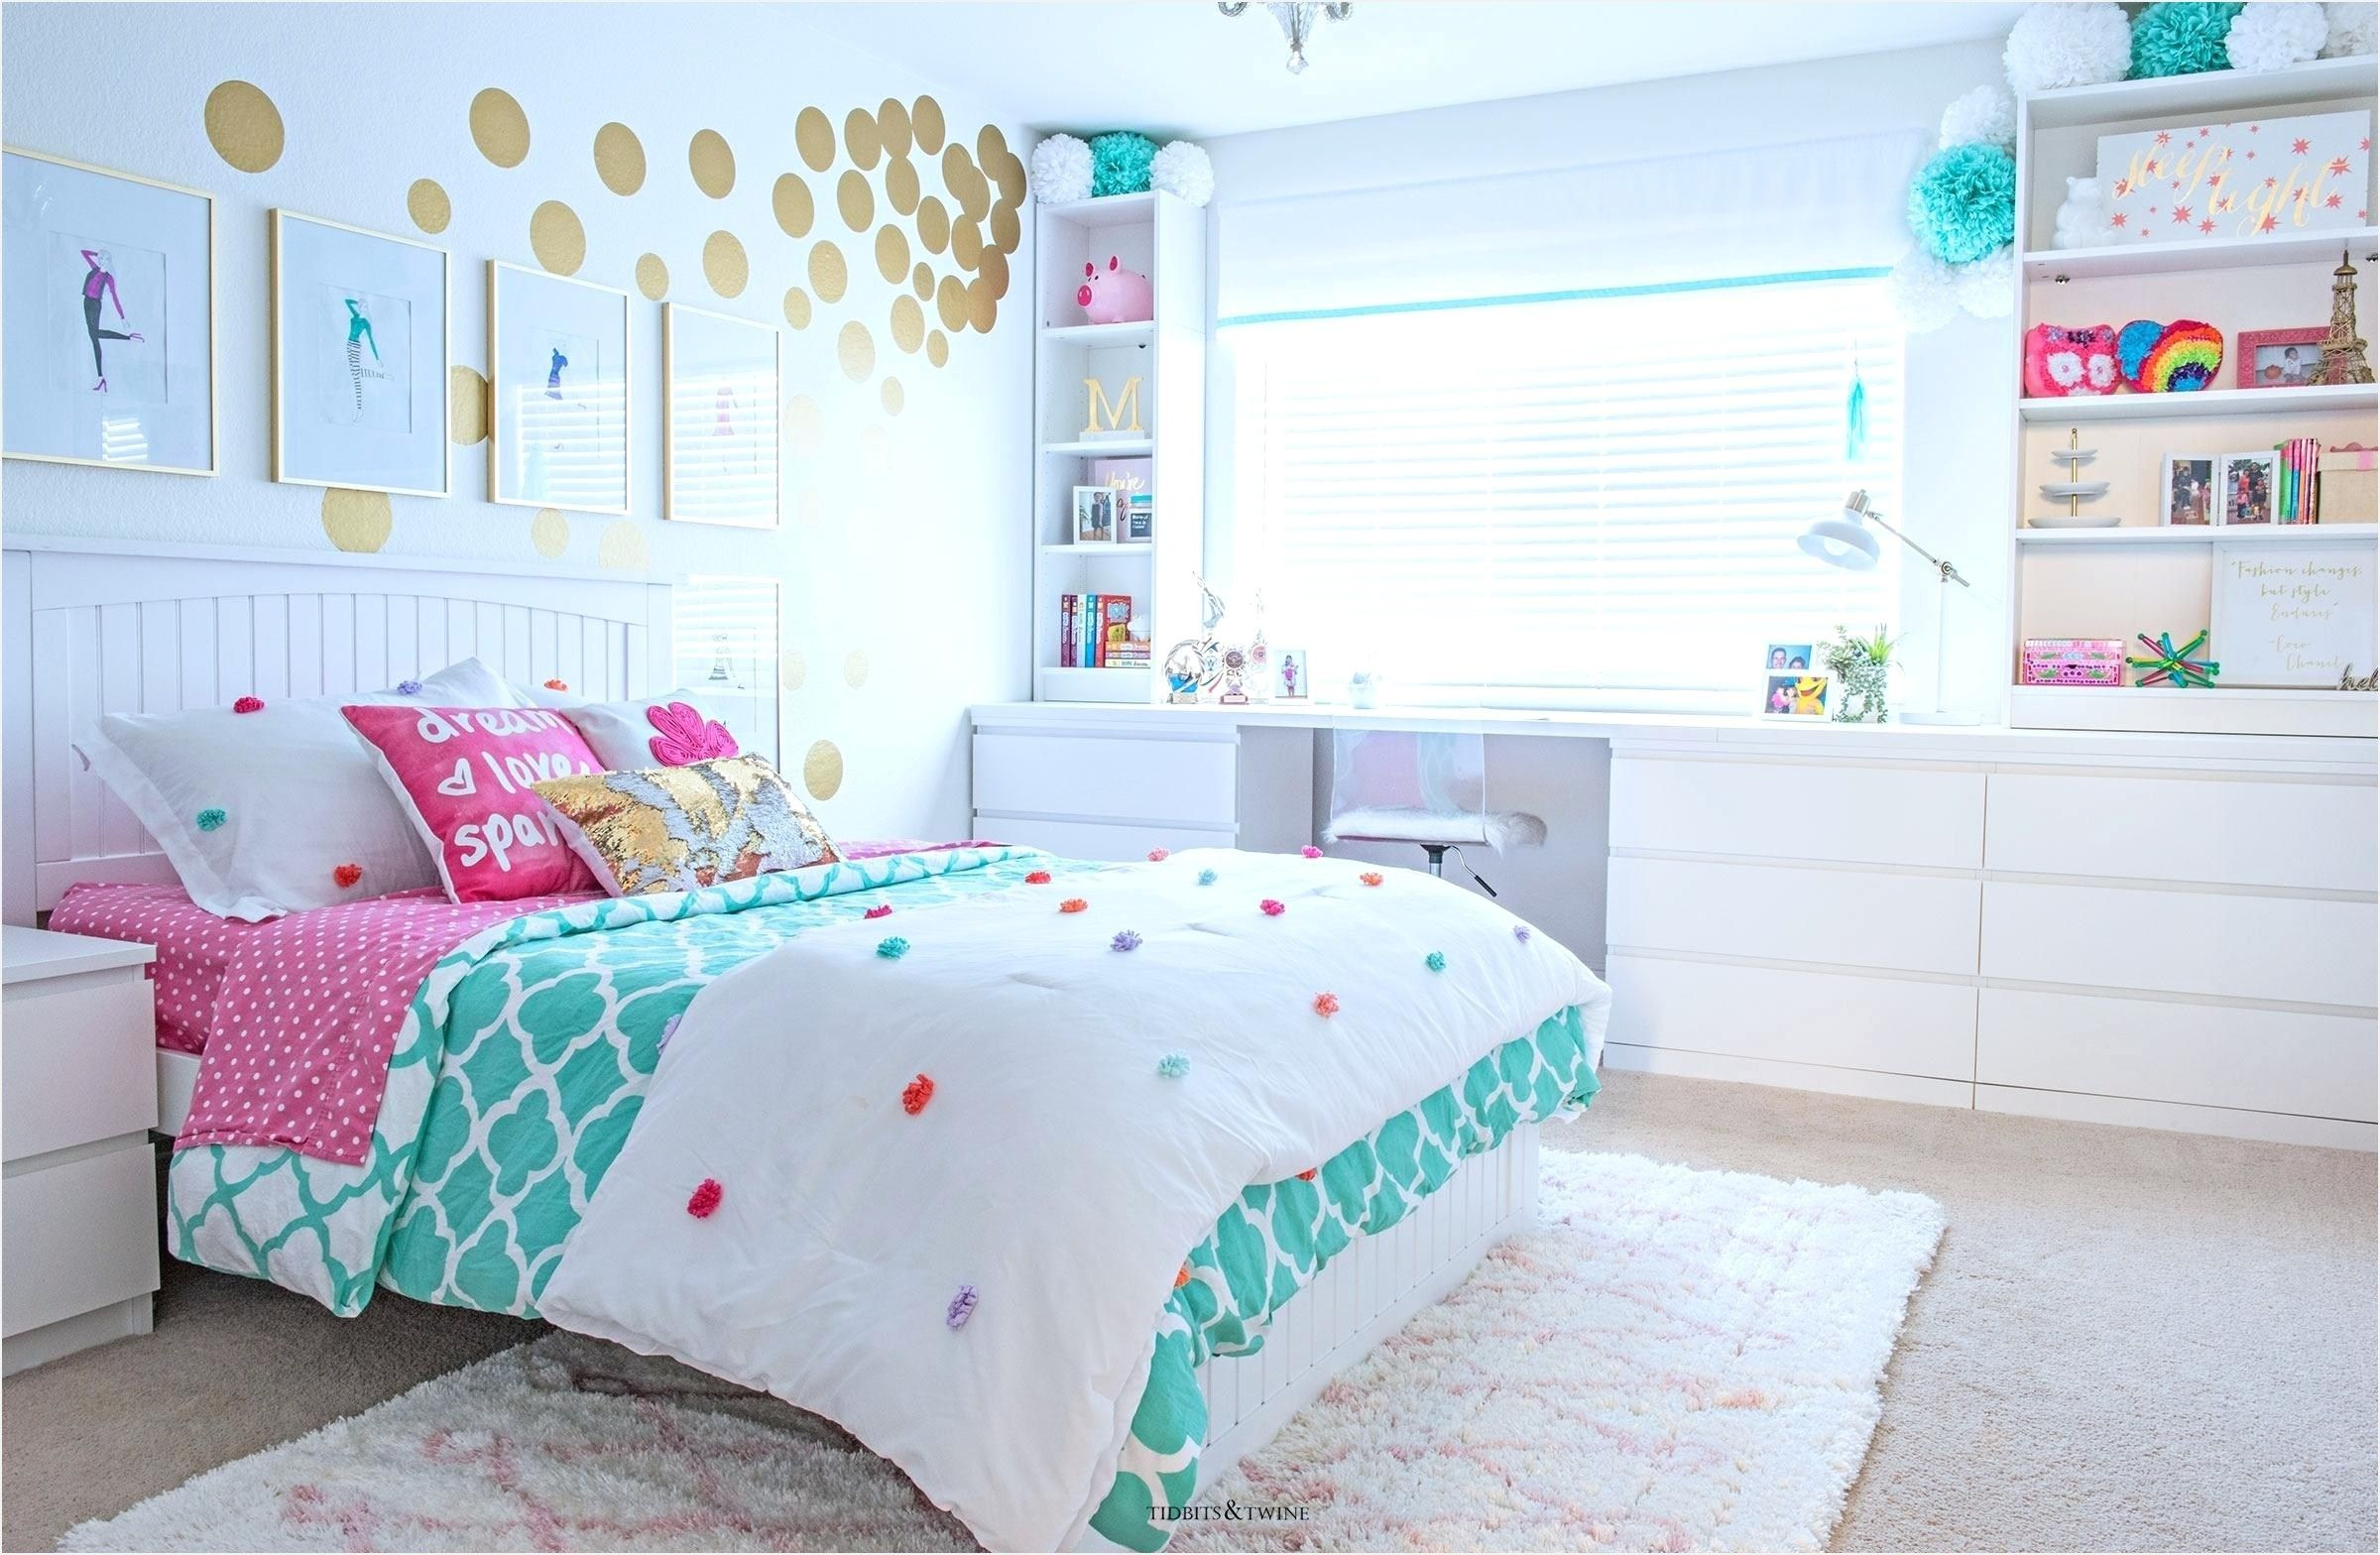 Girls Bedroom Makeover Ideas in 2020 | Bedroom for girls ...